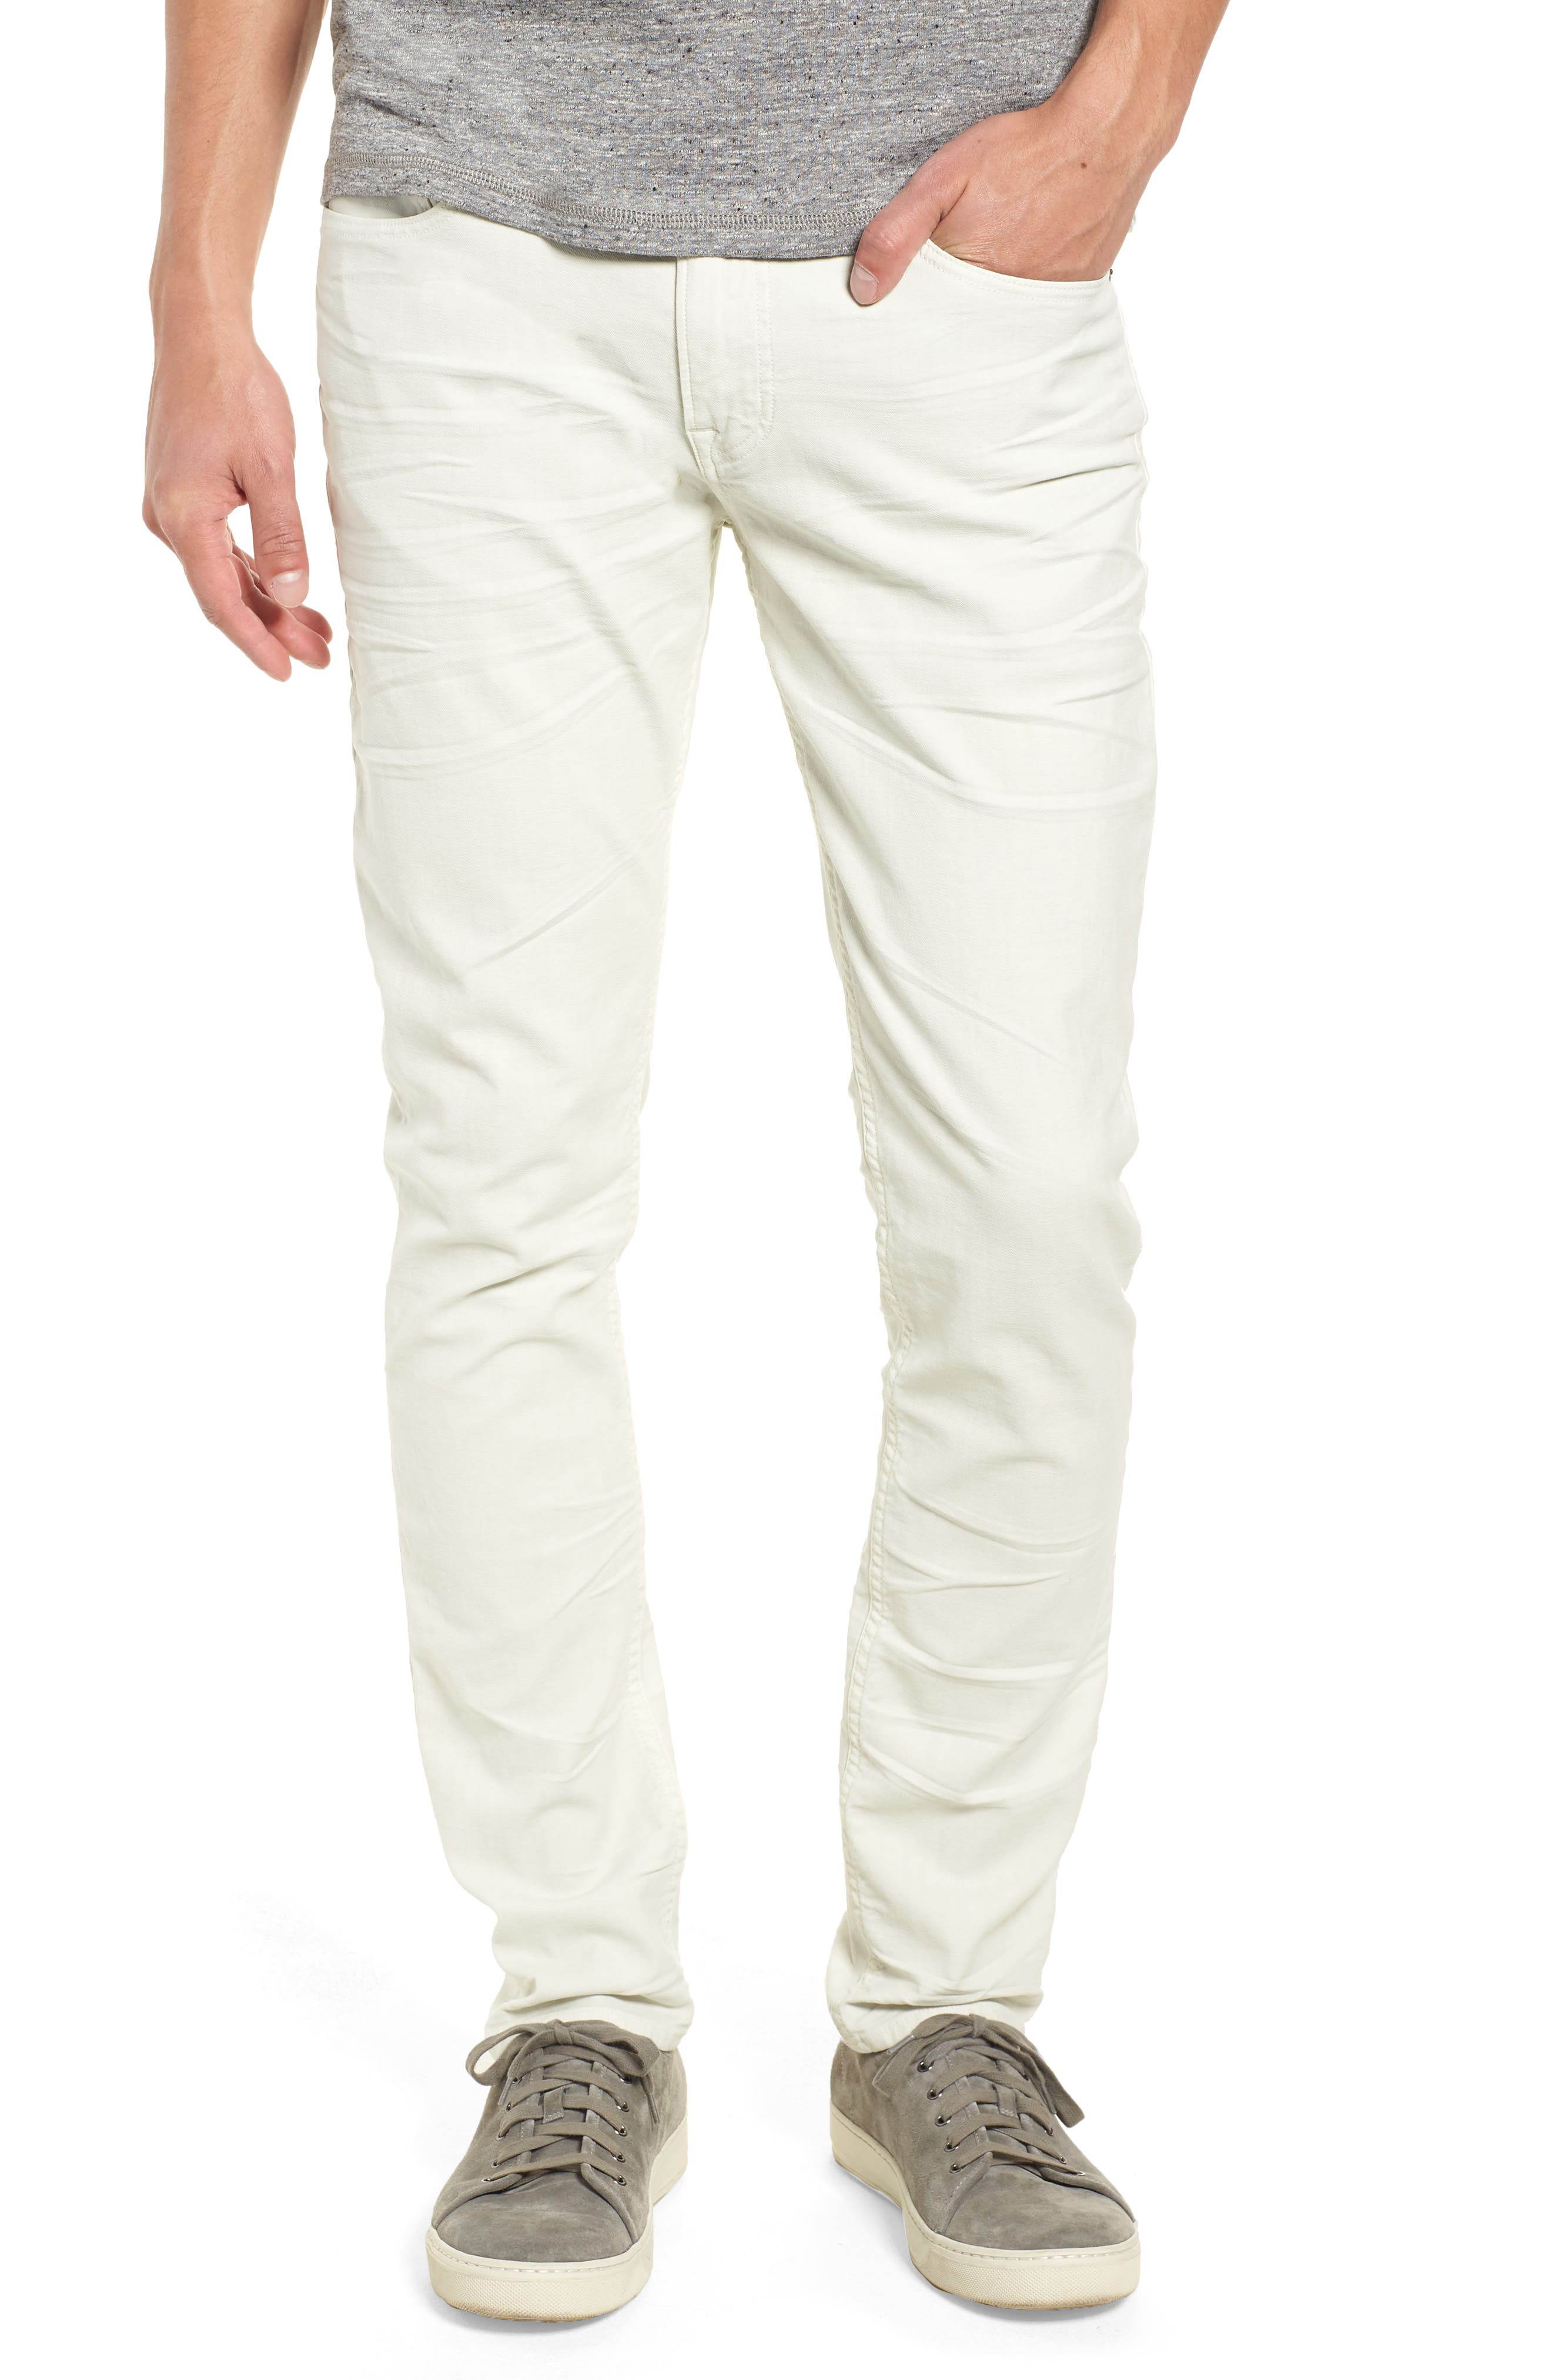 Hudson Axl Skinny Fit Jeans,                         Main,                         color, DIRTY WHITE